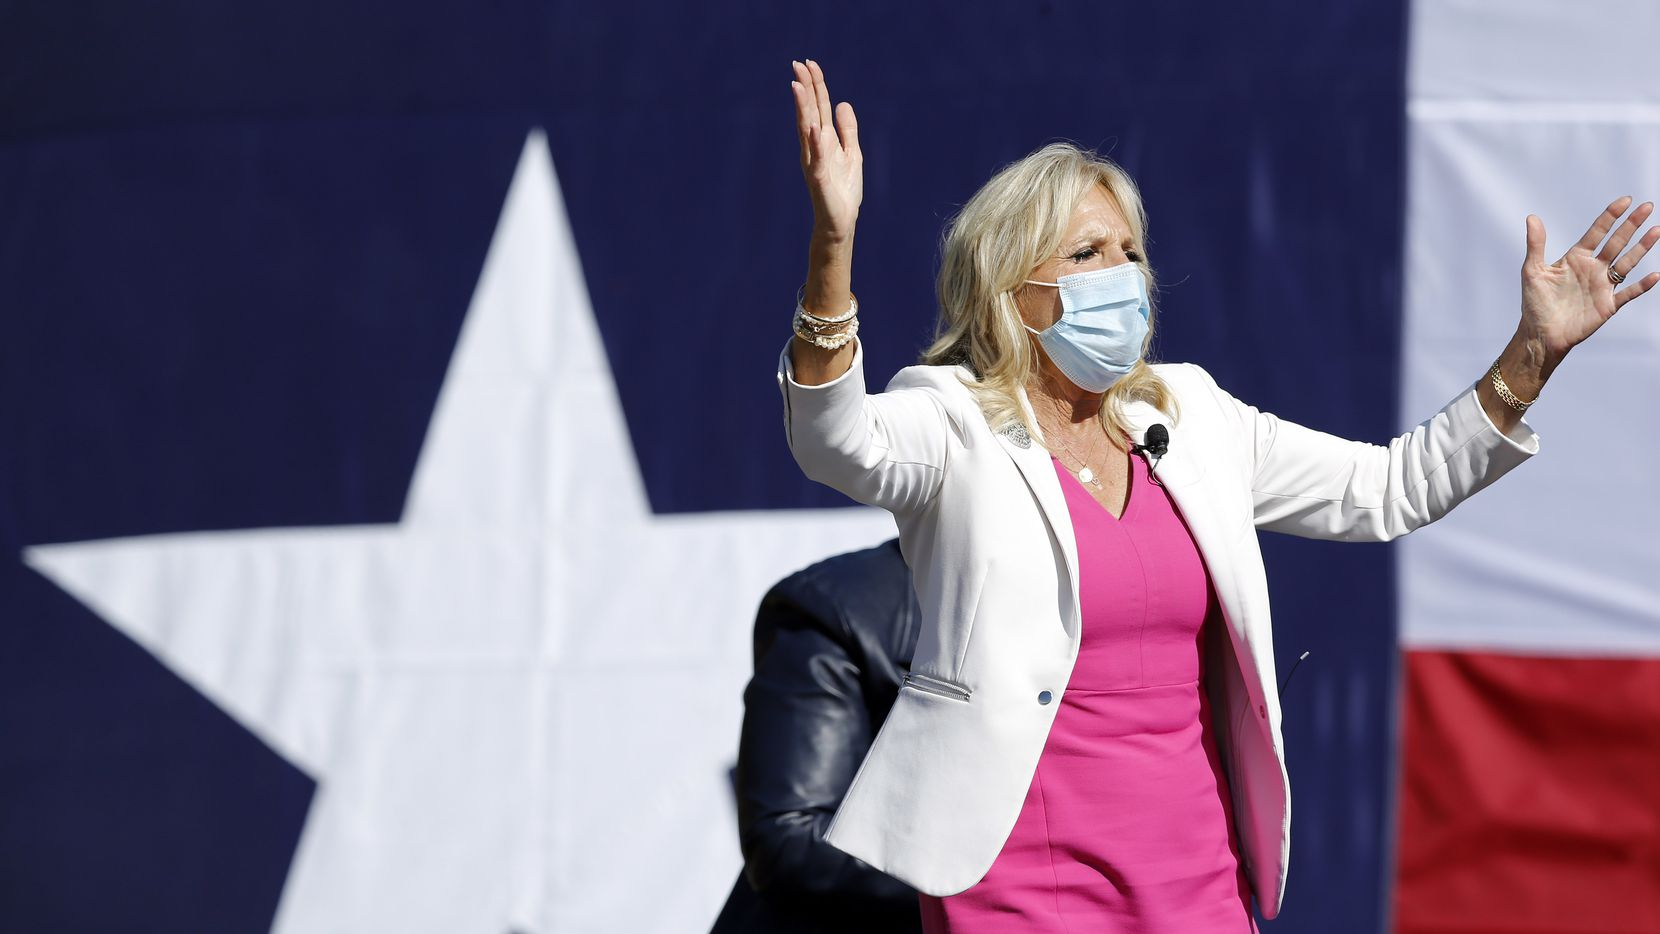 On the first day of early voting, former second lady Jill Biden waves to her supporters as she made a drive-in campaign rally stop on behalf of her husband and Democratic Presidential candidate Joe Biden, at Fair Park in Dallas, Tuesday, October 13, 2020.